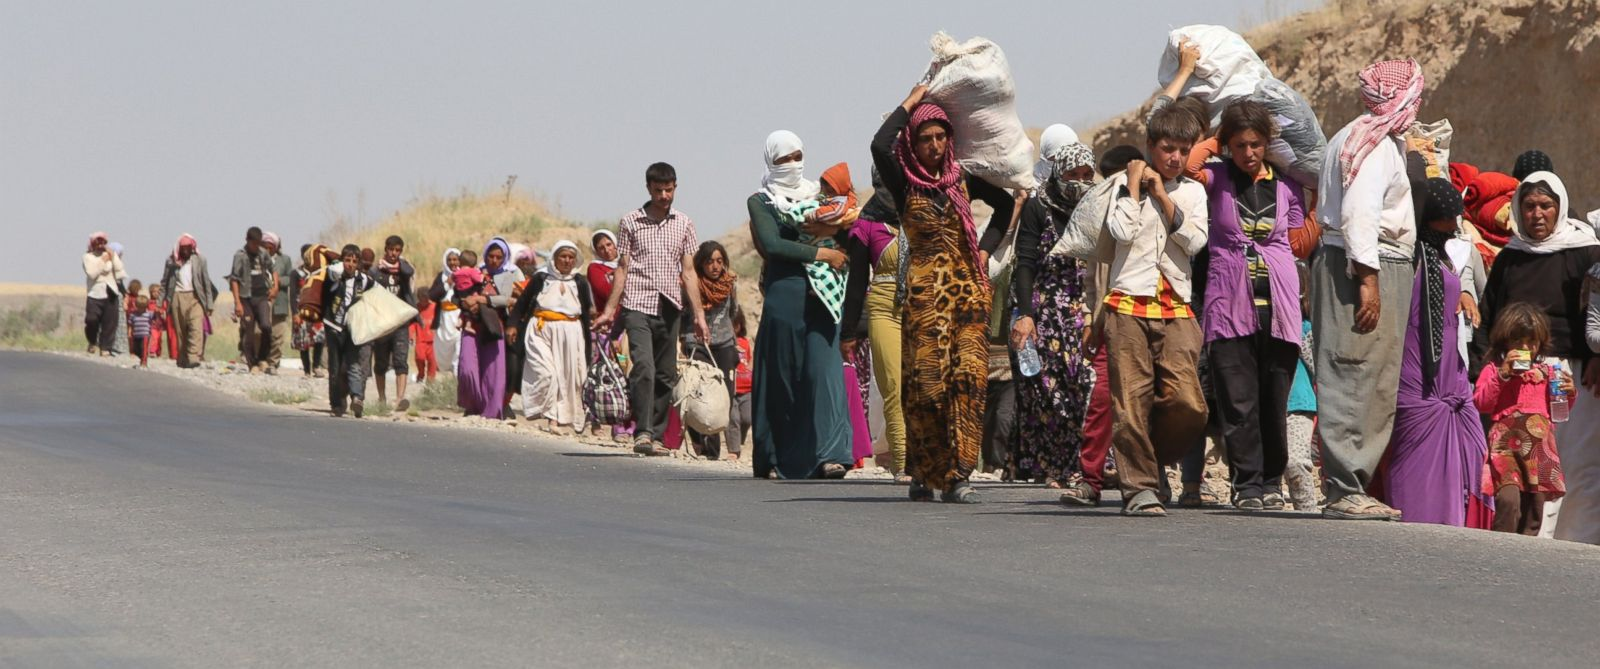 PHOTO: Displaced Iraqi families from the Yazidi community cross the Iraqi-Syrian border at the Fishkhabur crossing, in northern Iraq, on August 13, 2014.